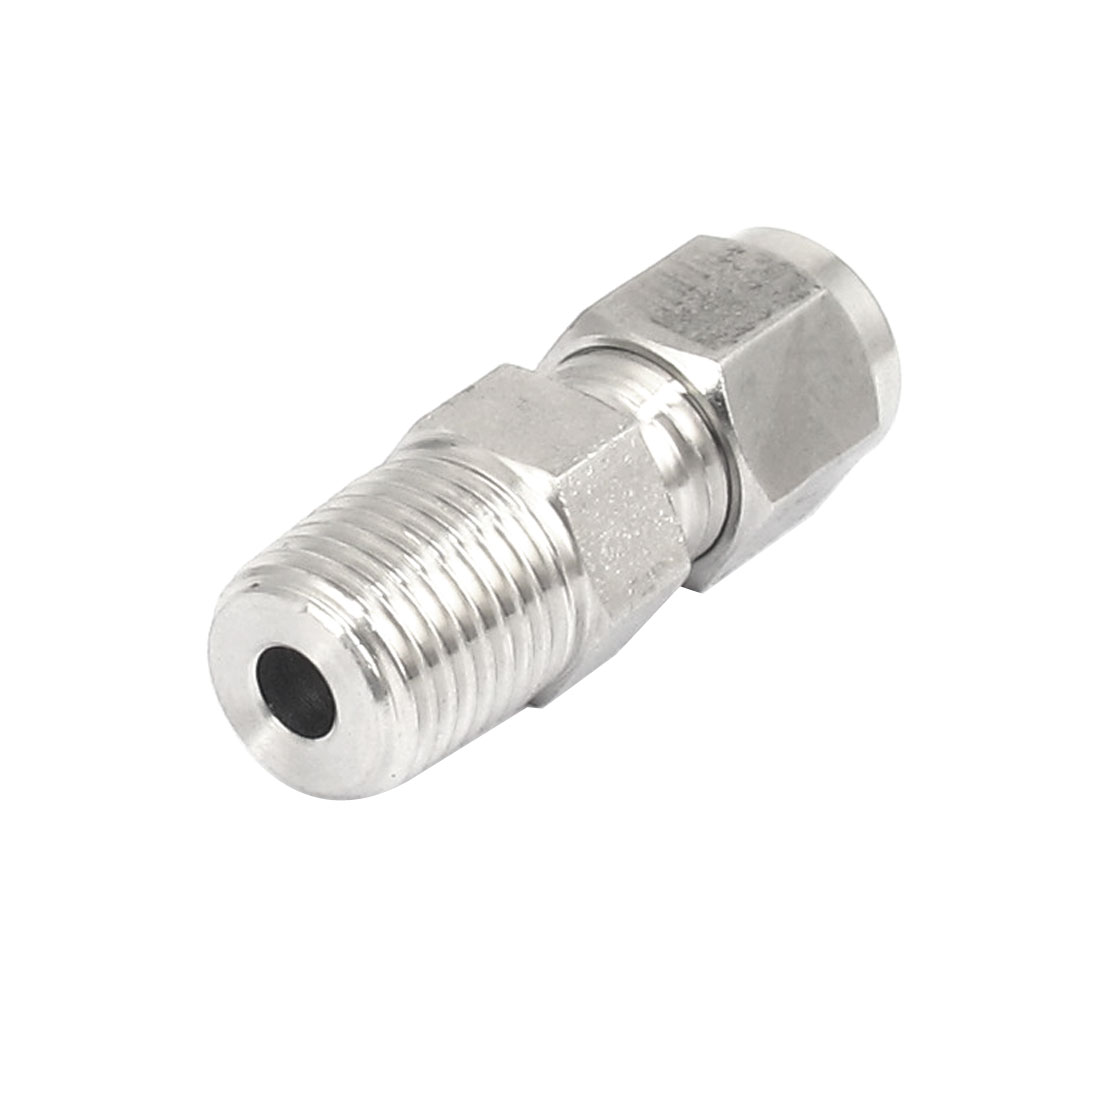 1/4BSP Thread 6mm Tube Dia 304 Stainless Steel Straight Pneumatic Quick Coupler